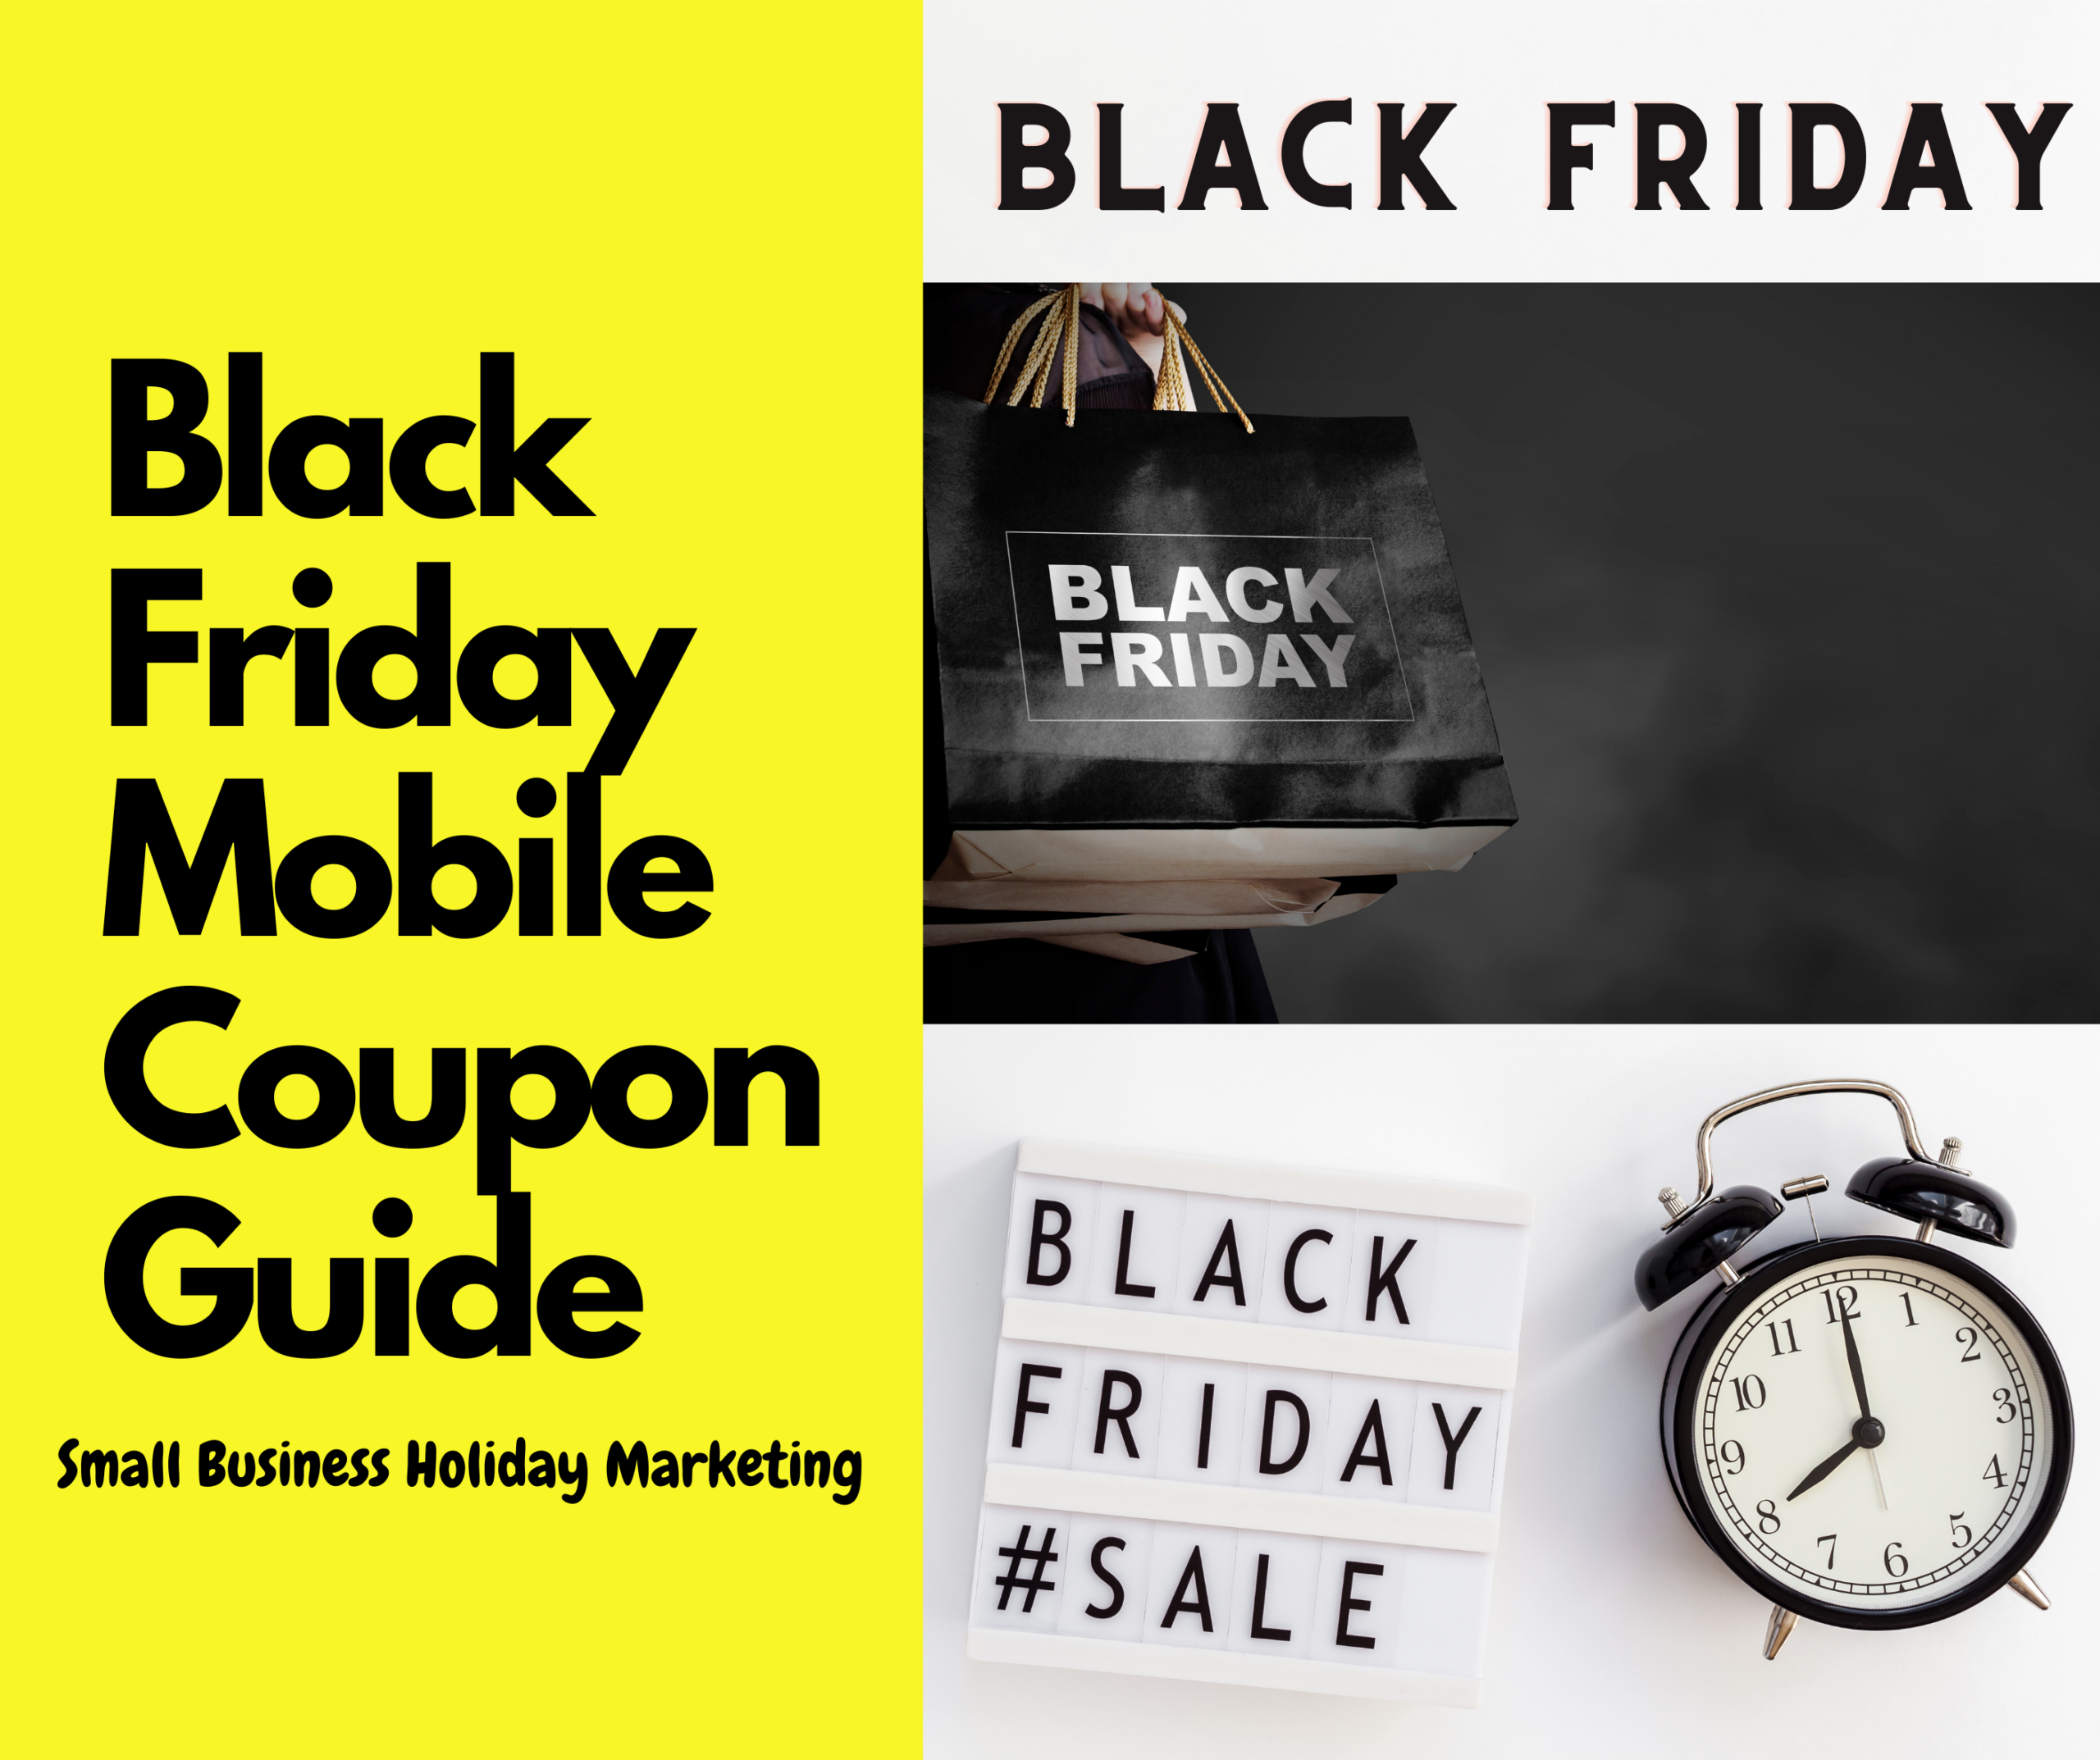 Black Friday Mobile Coupon Guide